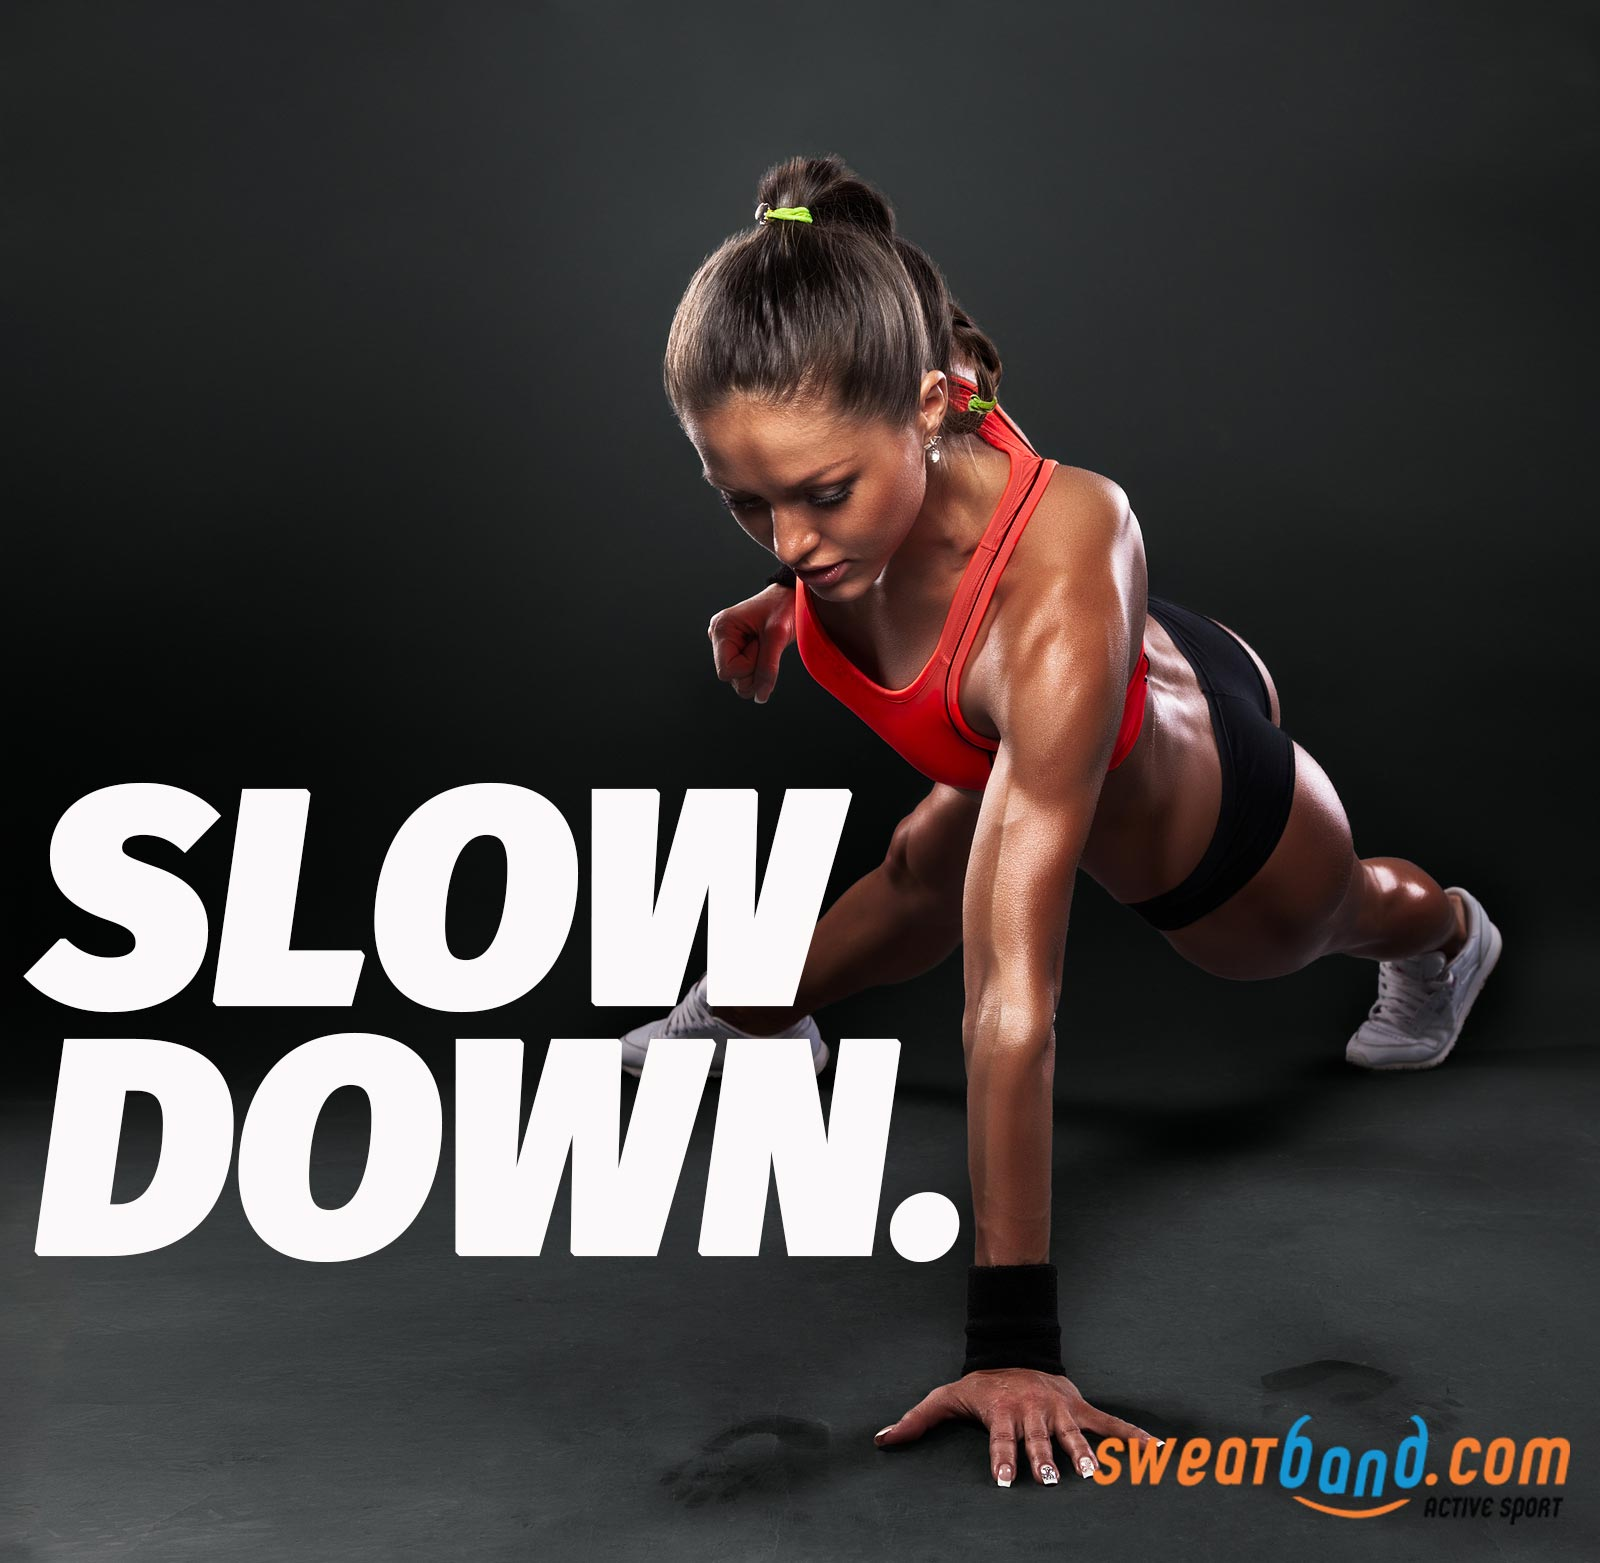 Slow down your reps and see the difference it makes to the effectiveness of your workouts.